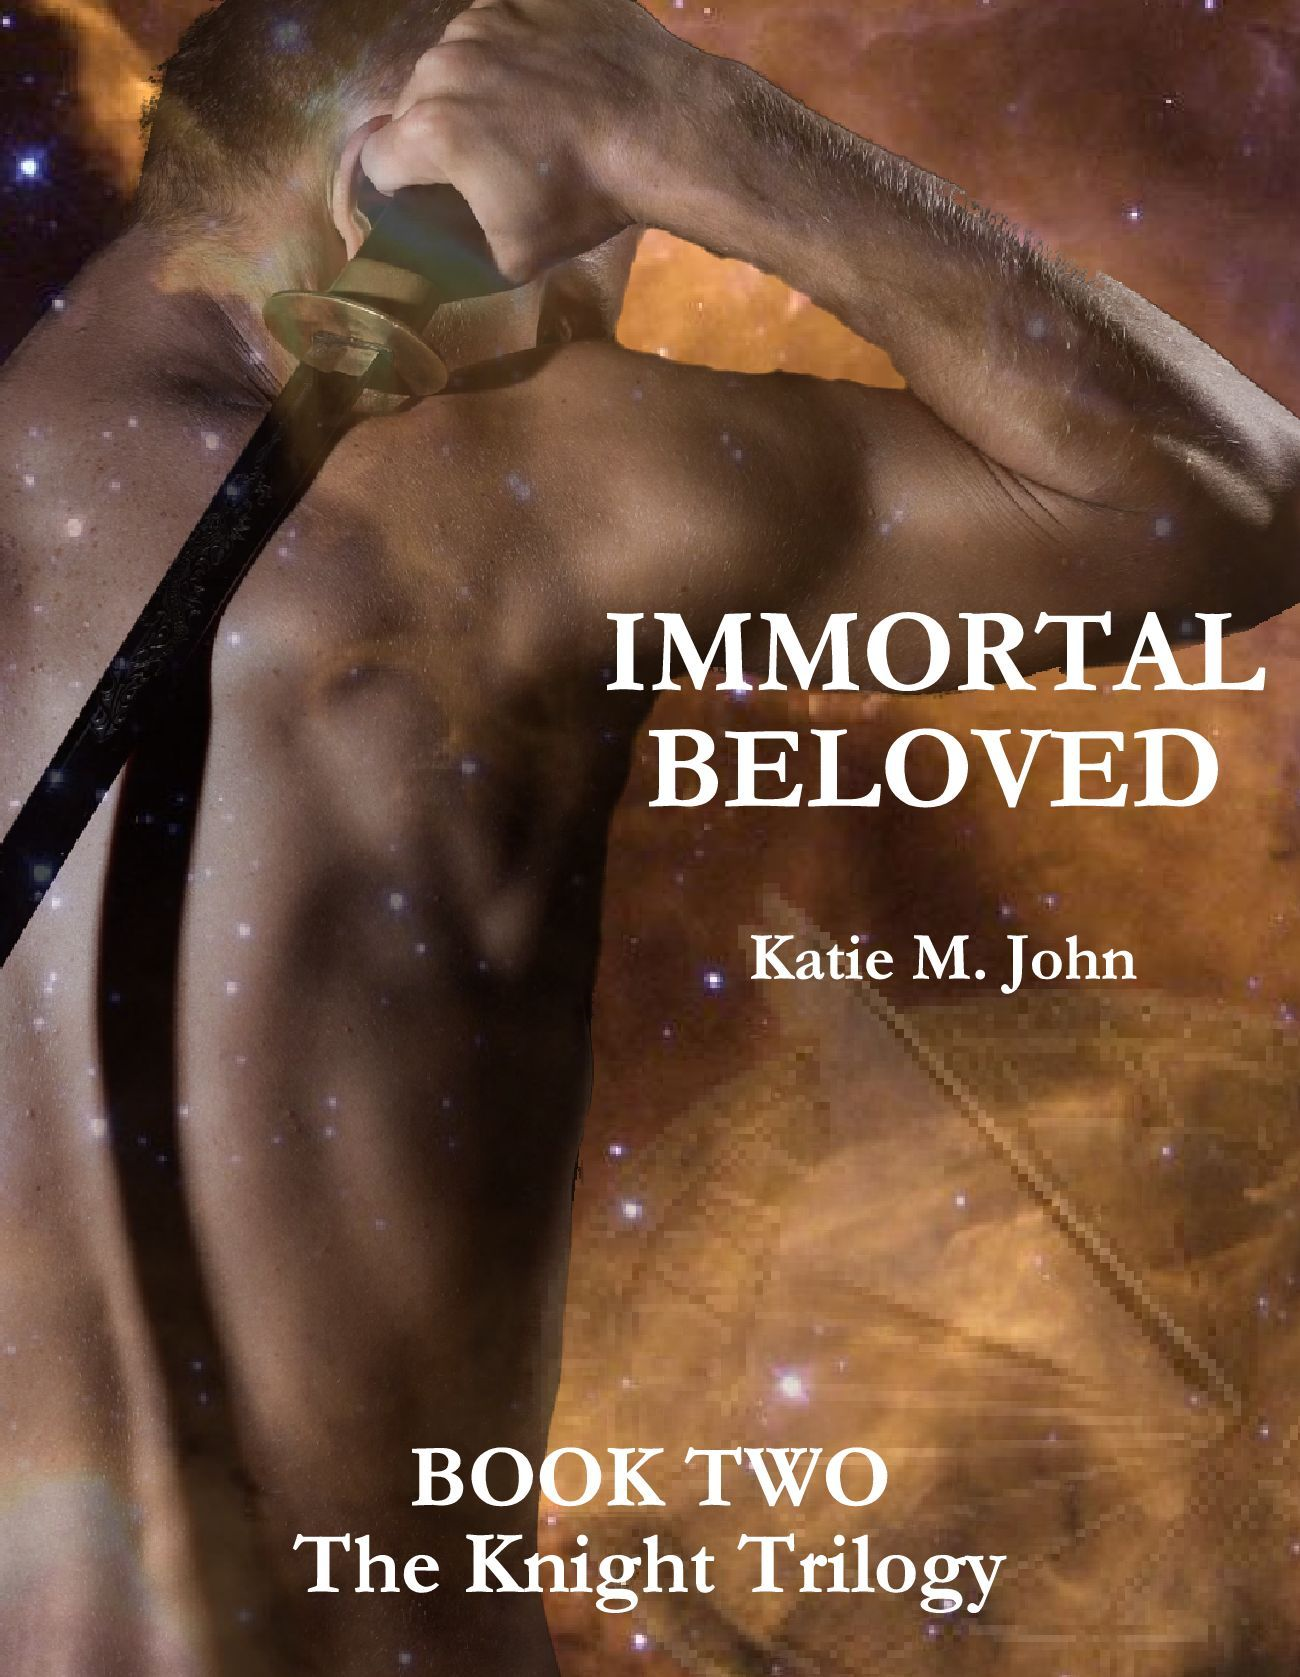 Immortal Beloved  (Book Two of The Knight Trilogy) By: Katie M John